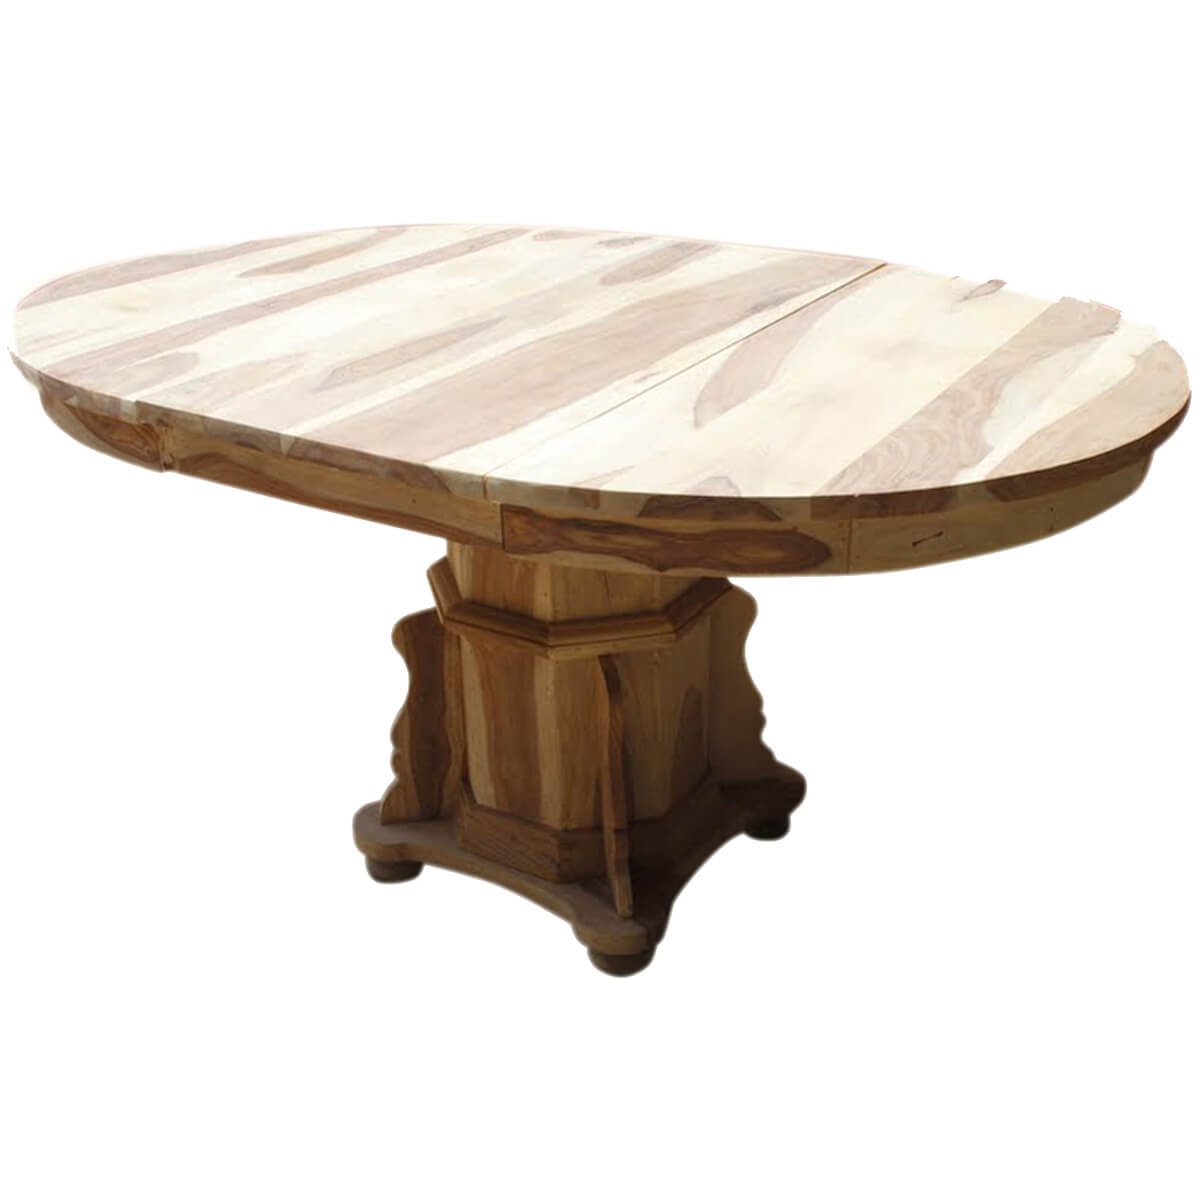 Dallas Ranch Solid Wood Pedestal Round Dining Table w  : 71202 from www.sierralivingconcepts.com size 1200 x 1200 jpeg 316kB